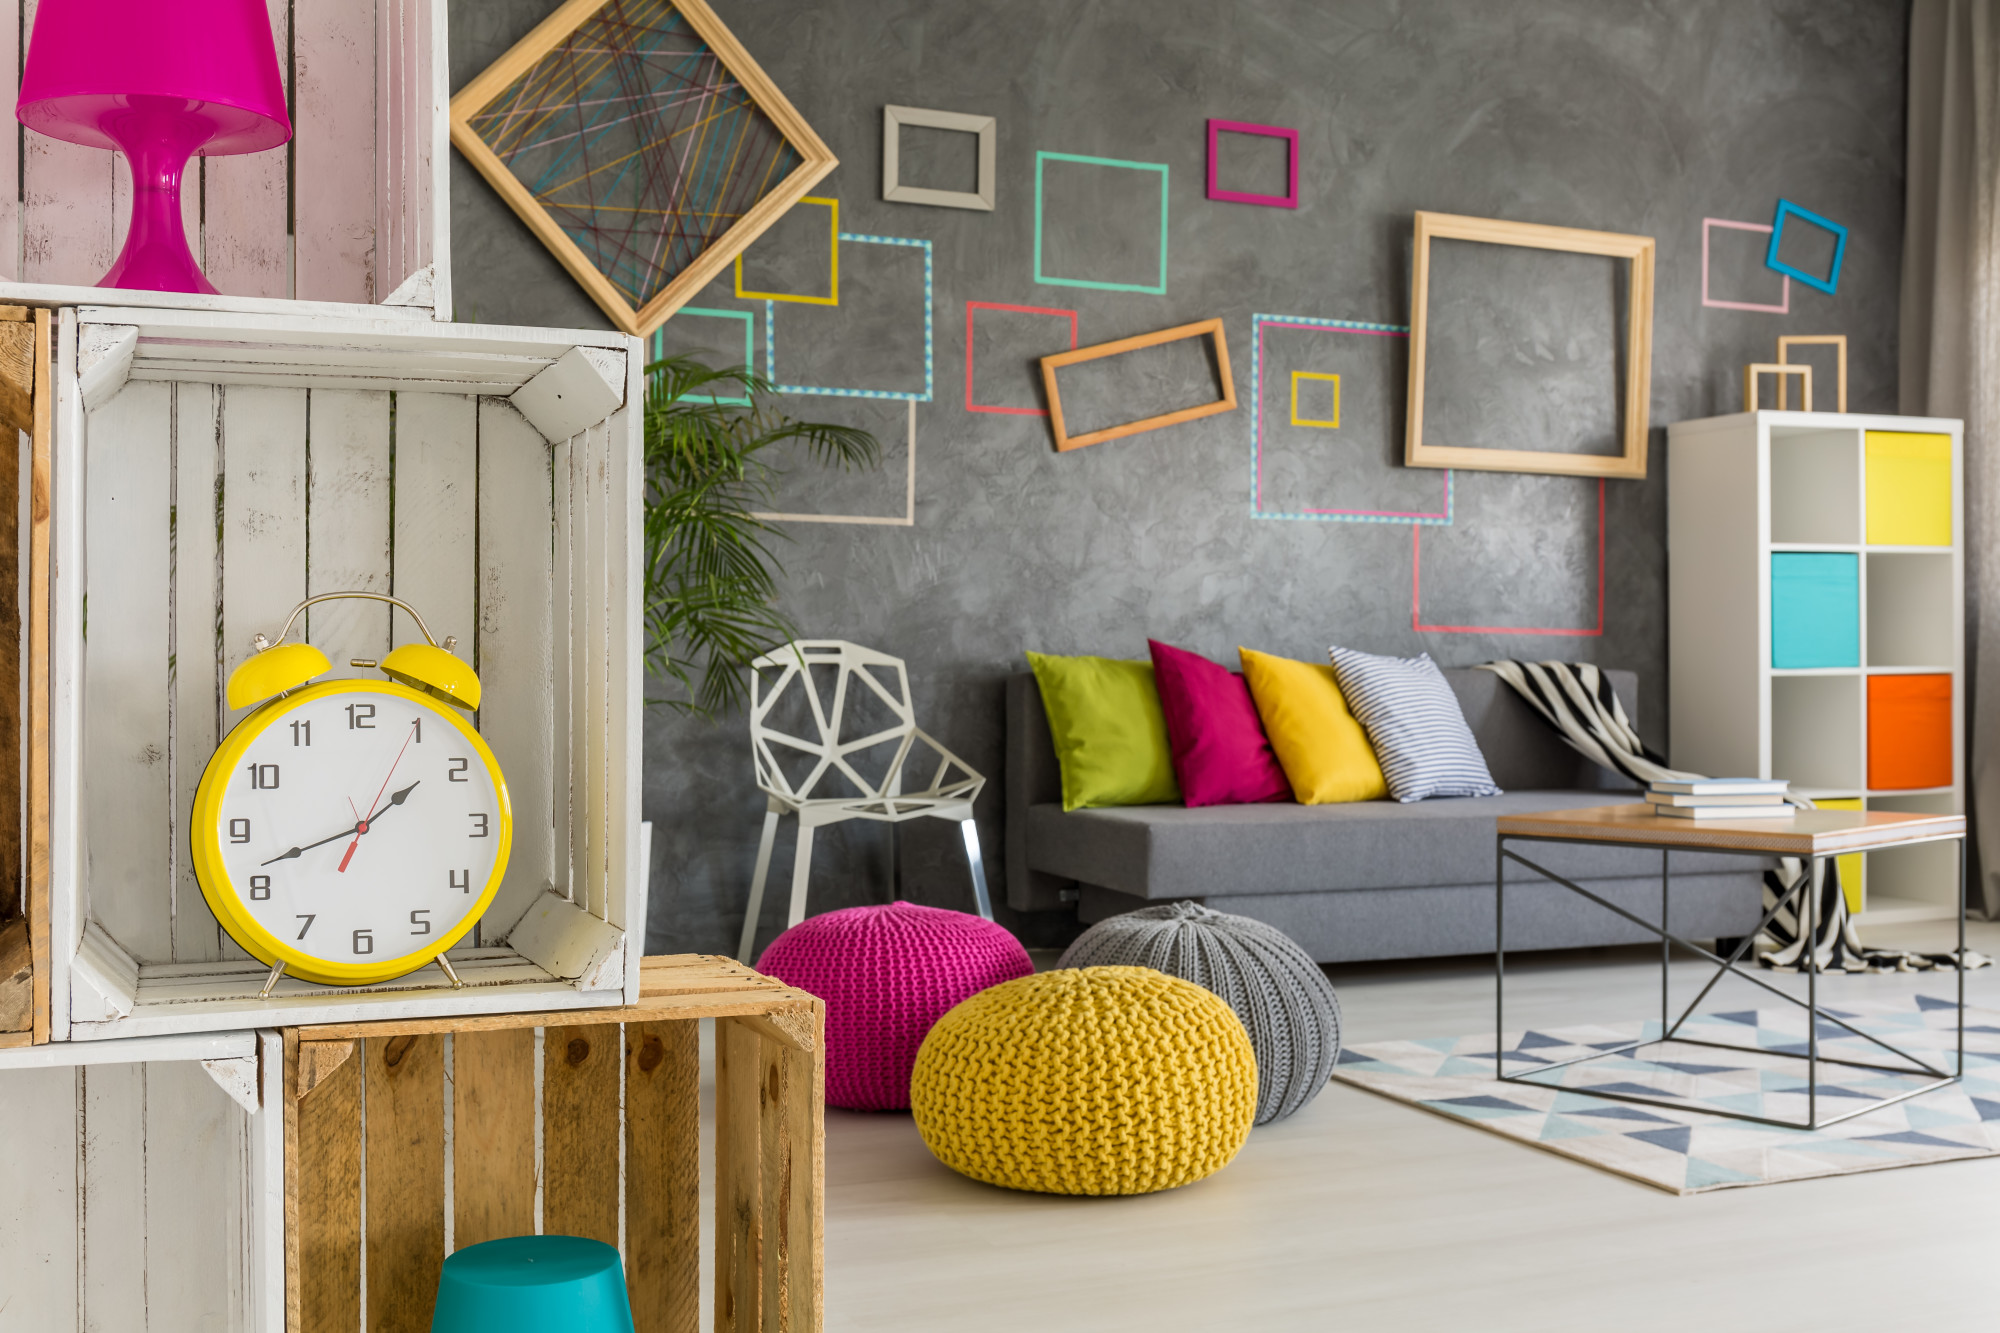 Are you moving into a new place? Do you want to make sure it looks its best? Check out our top apartment decor tips today.